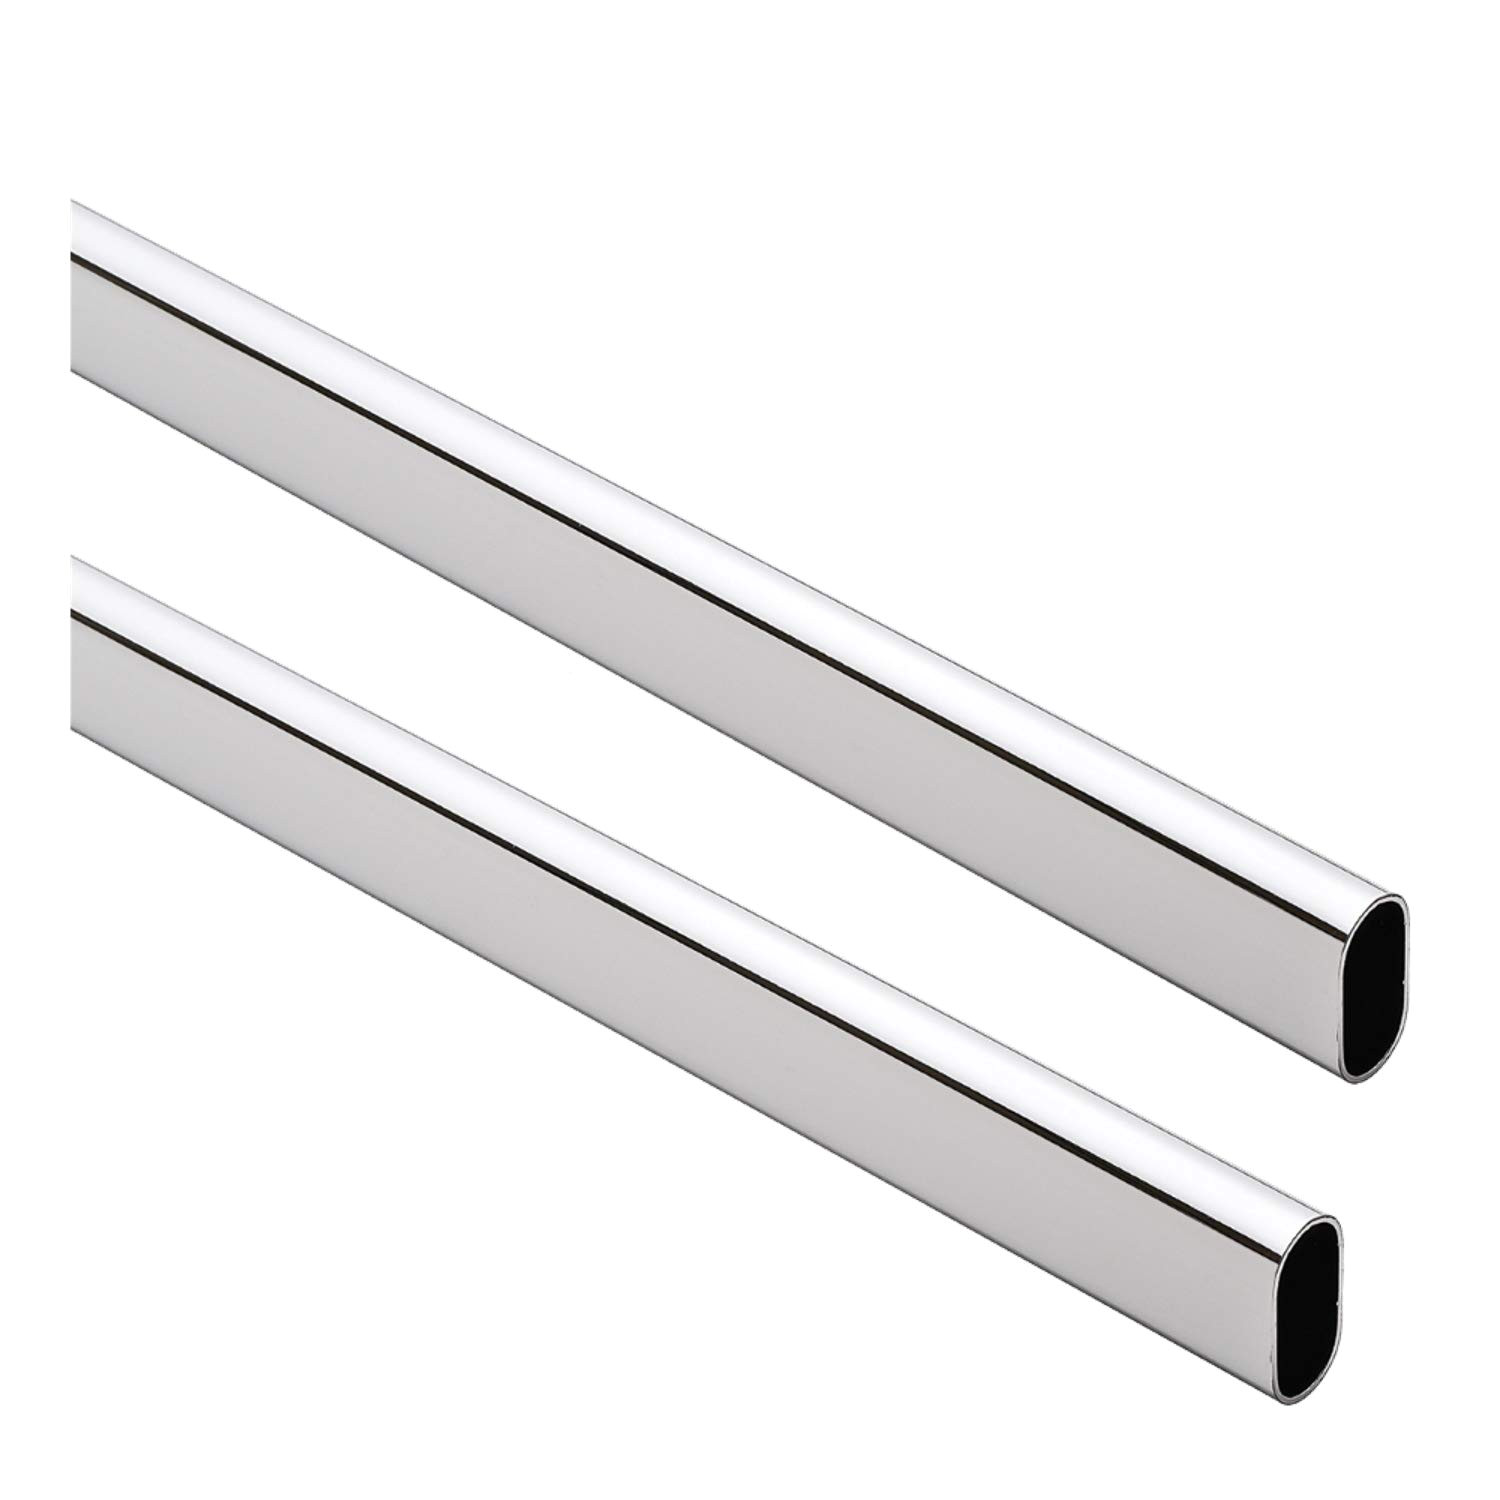 oval closet rod heavy duty 15mm x 30mm polished chrome 96